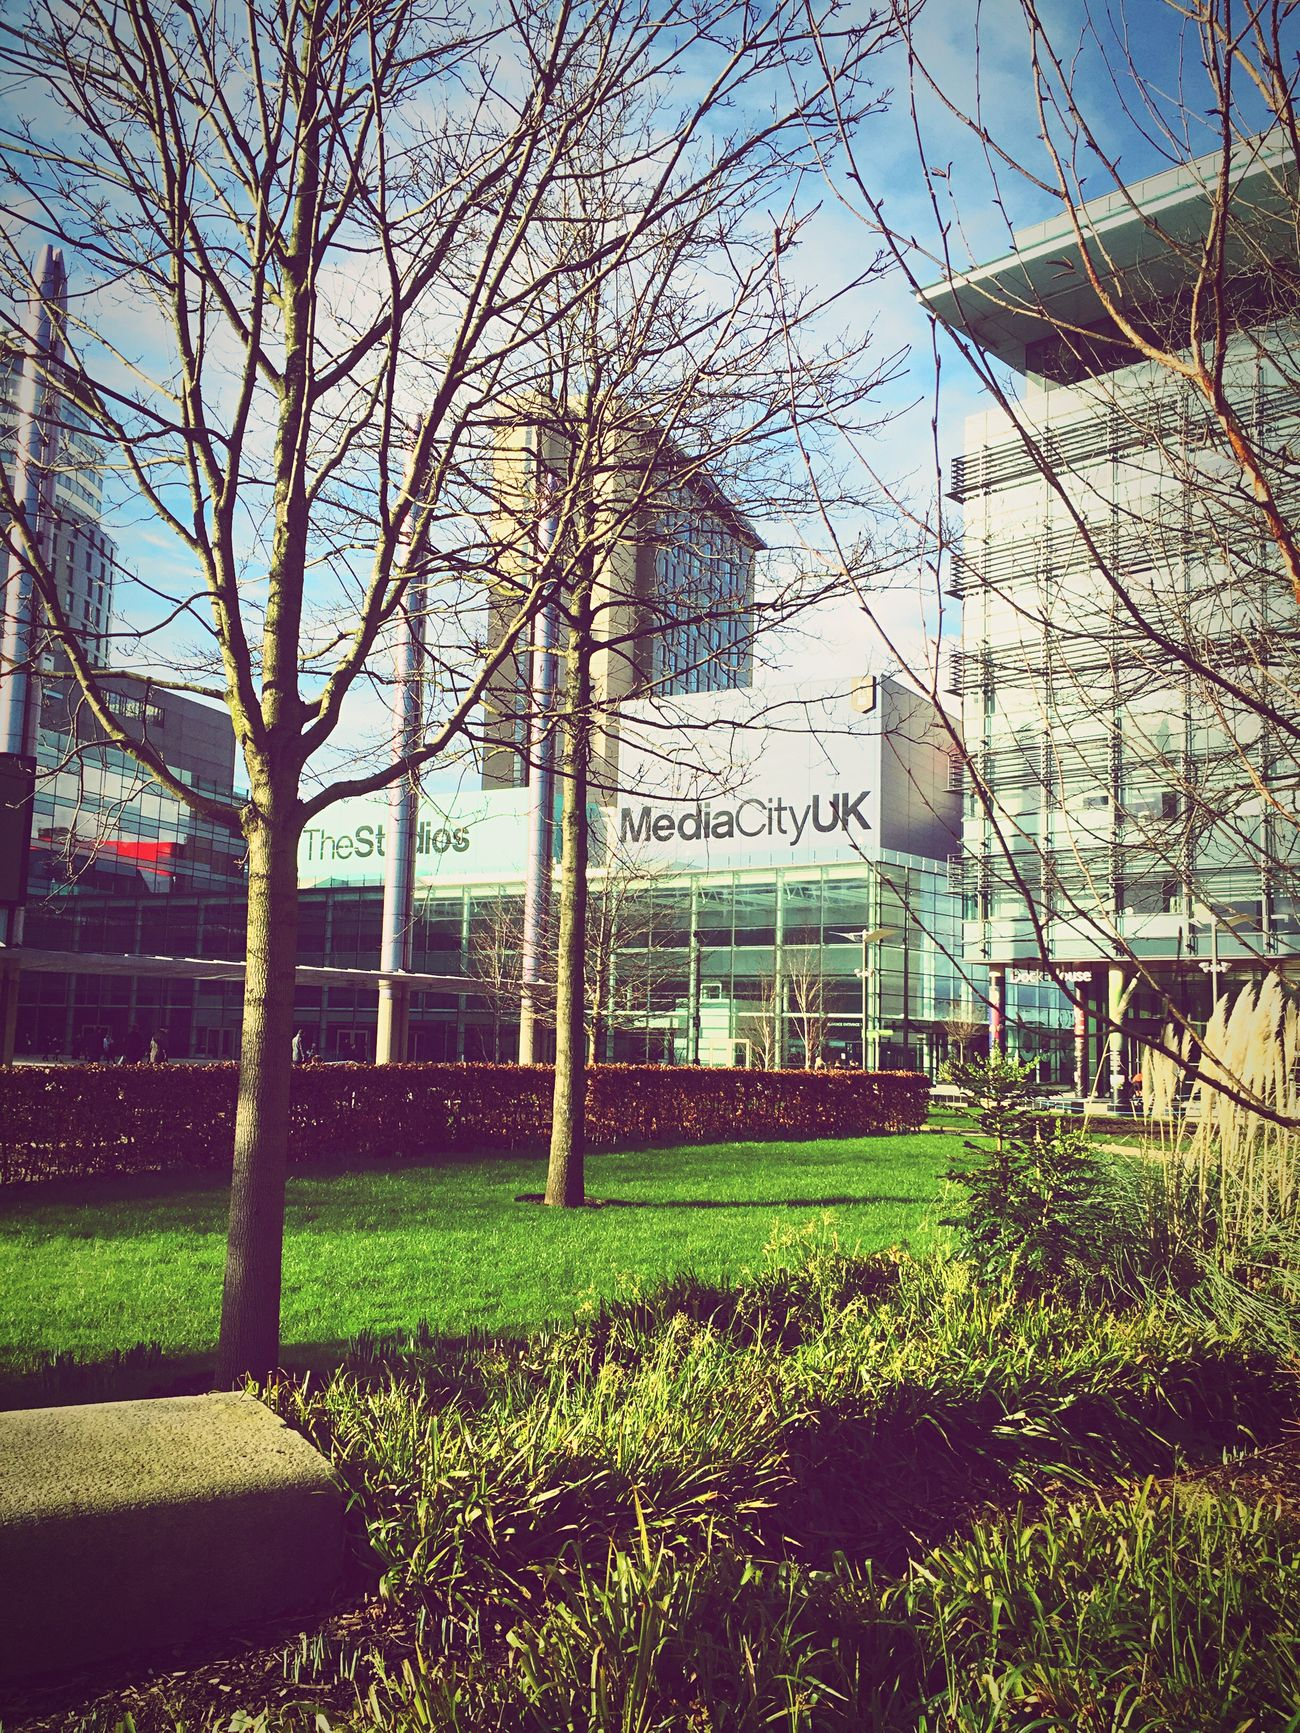 My second home. Architecture Auto Post Production Filter Bare Tree Beautiful Building Exterior Built Structure Change Day Environmental Conservation Hanging Leading Low Angle View Mediacityuk Metal Narrow No People Outdoors Park Playground Sunny The Way Forward Tree University Working